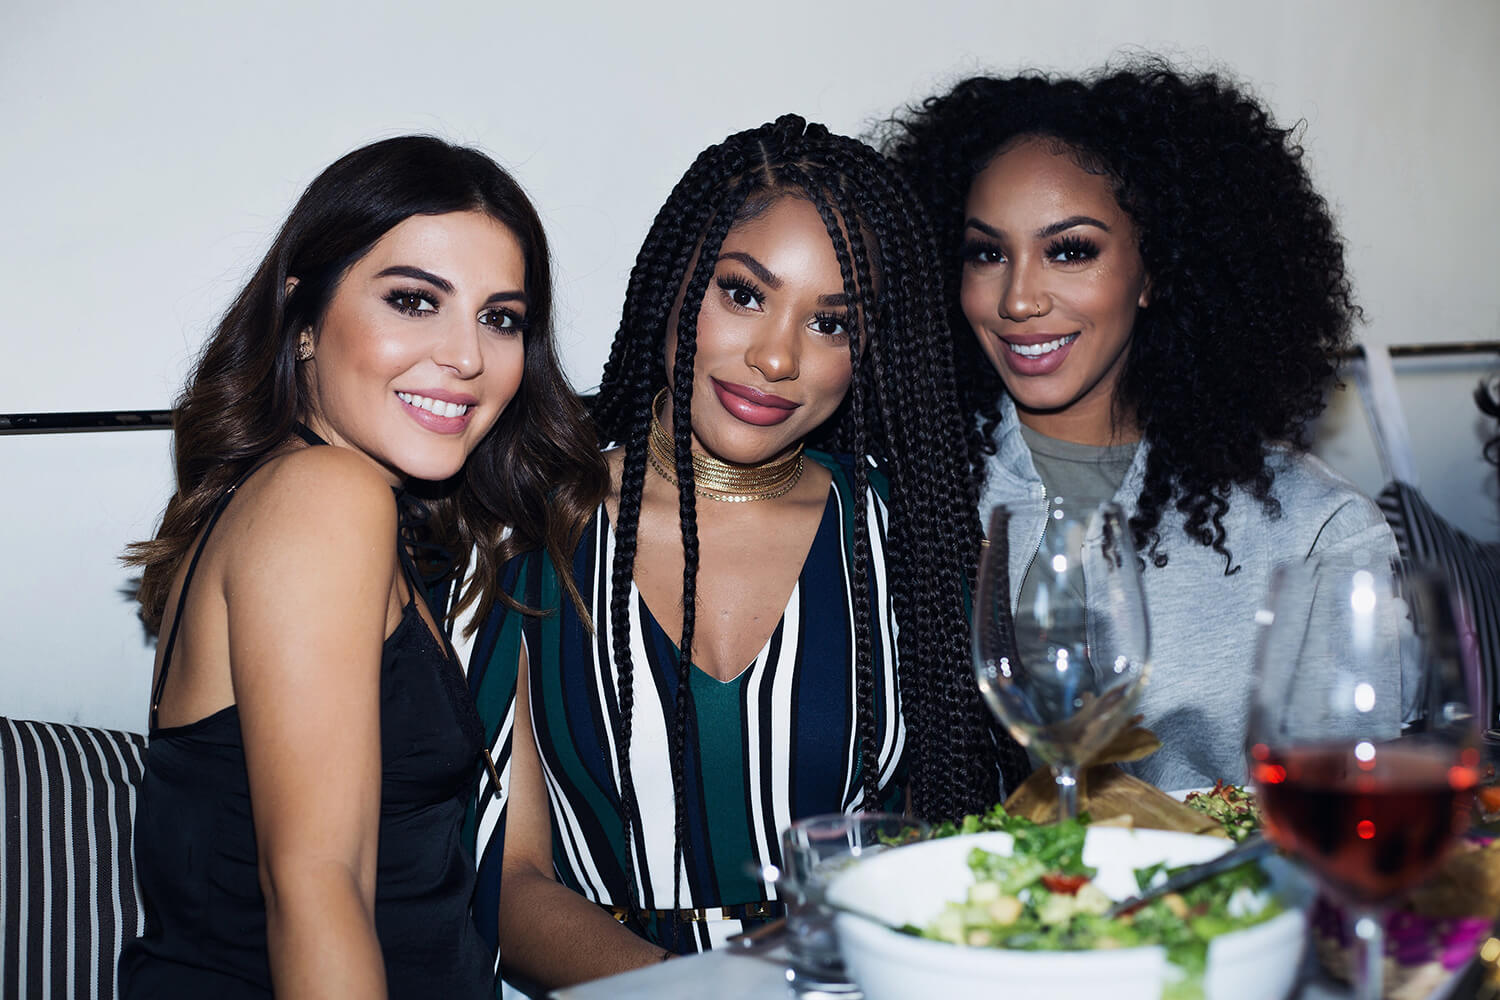 sona gasparian, Raye of @itsmyrayeraye, and Alyssa of @foreverflawlyss at the pérsona cosmetics identity palette launch party